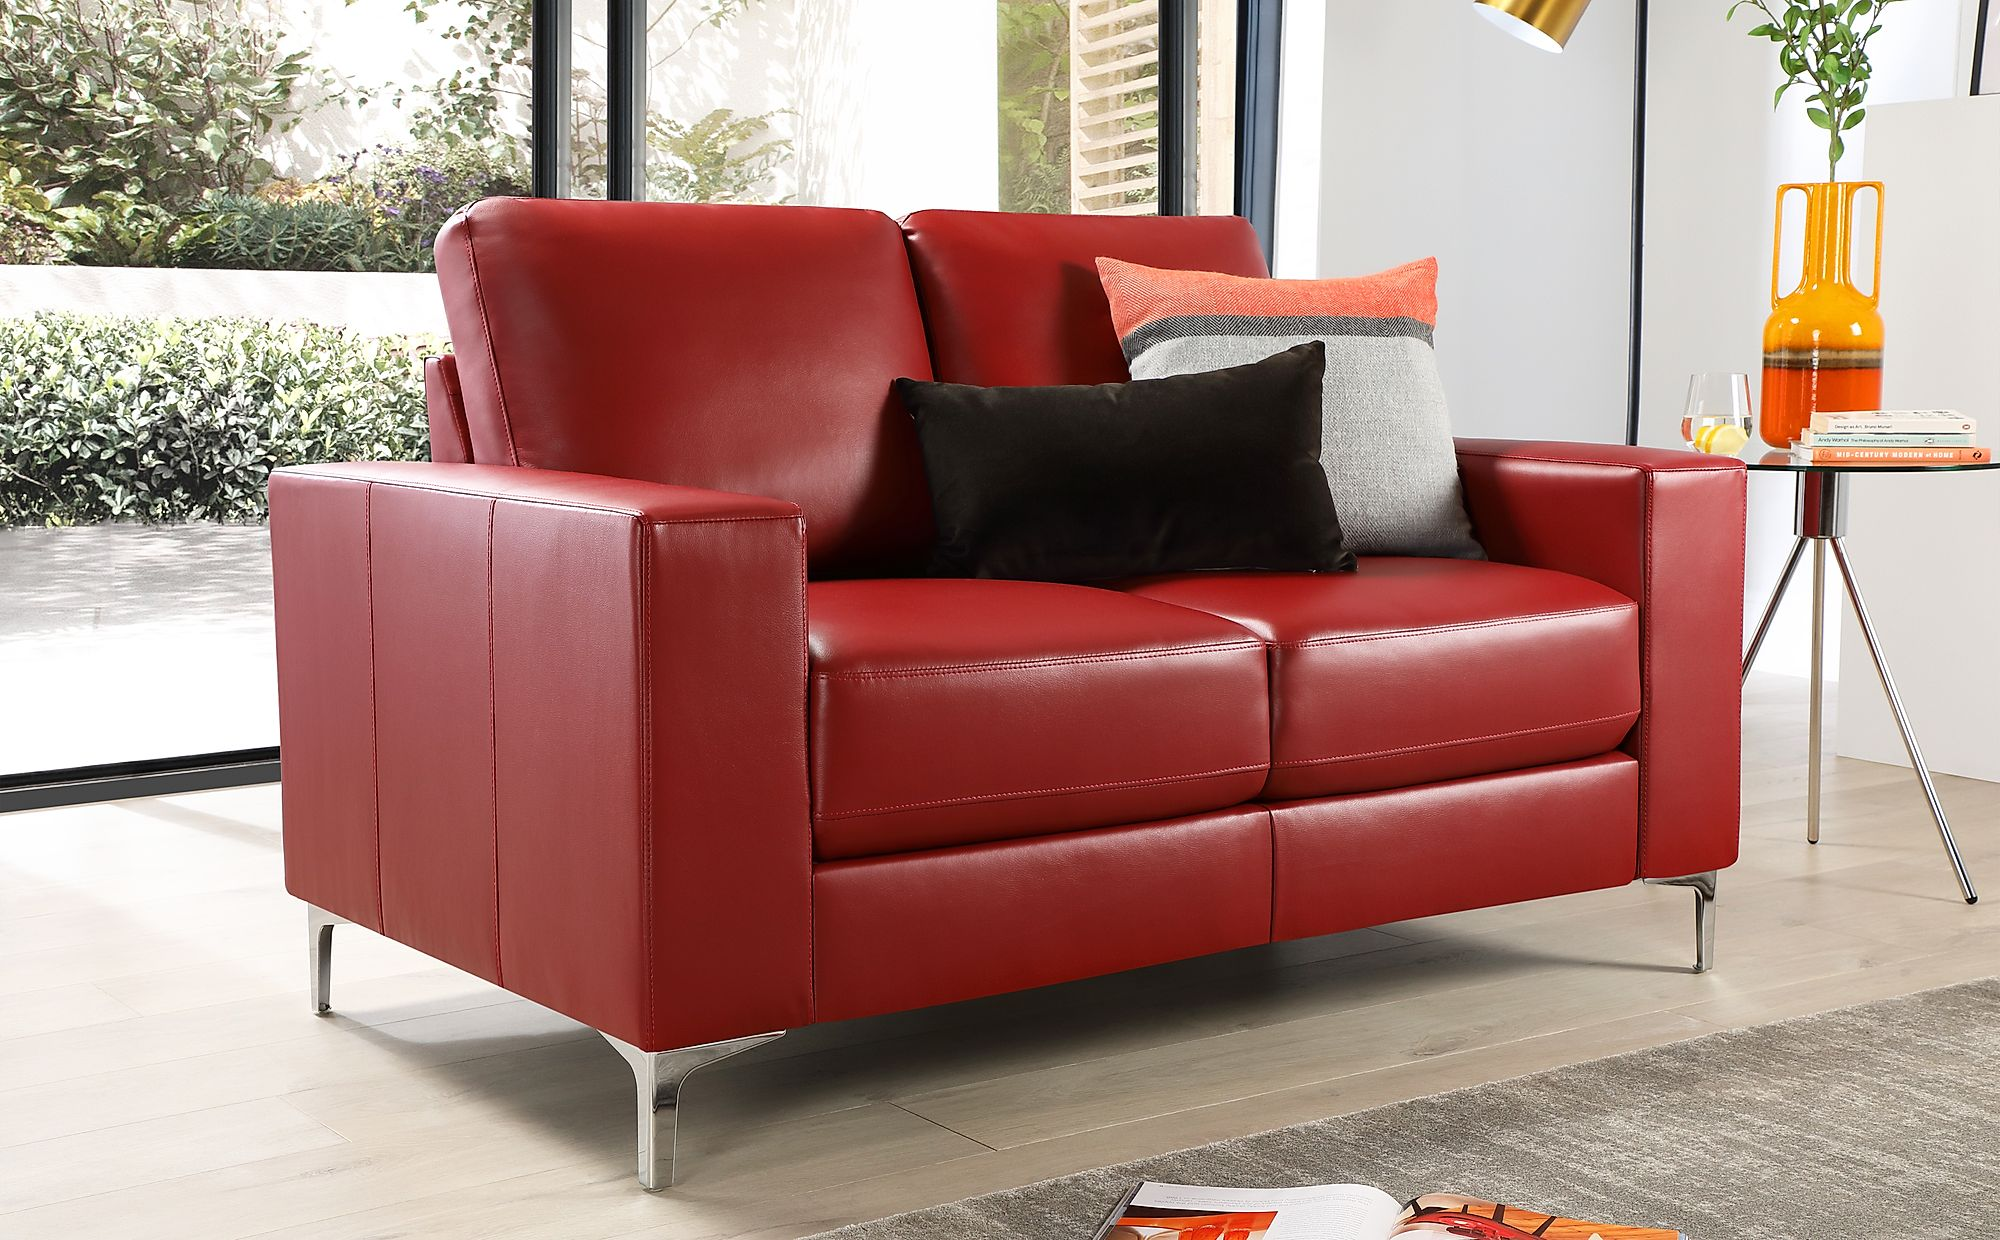 Sensational Baltimore Red Leather 2 Seater Sofa Download Free Architecture Designs Philgrimeyleaguecom